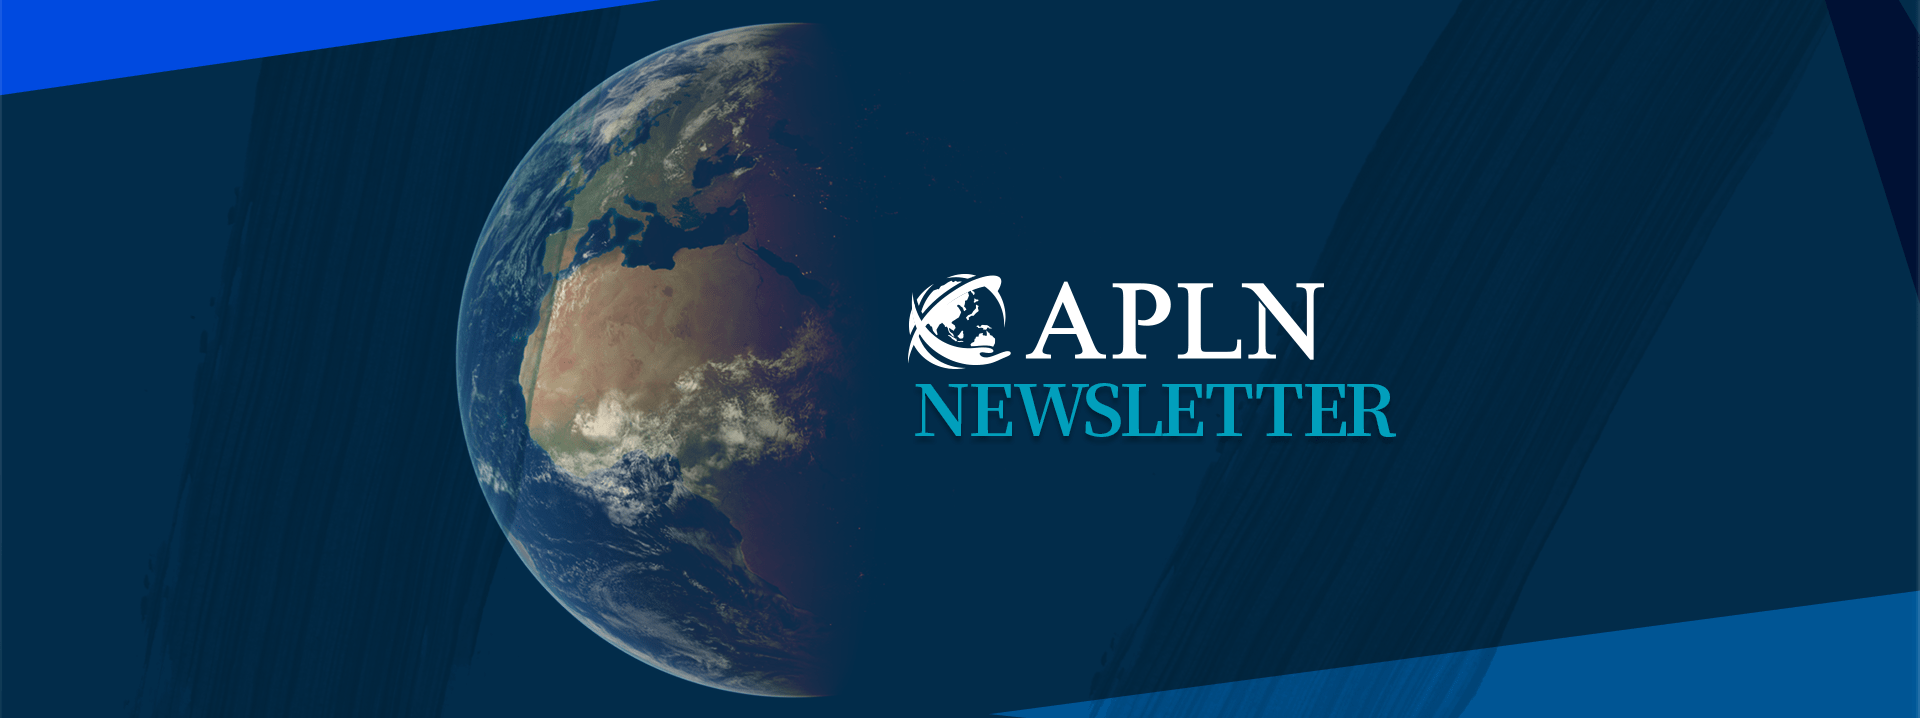 APLN Newsletter (23 October 2020)